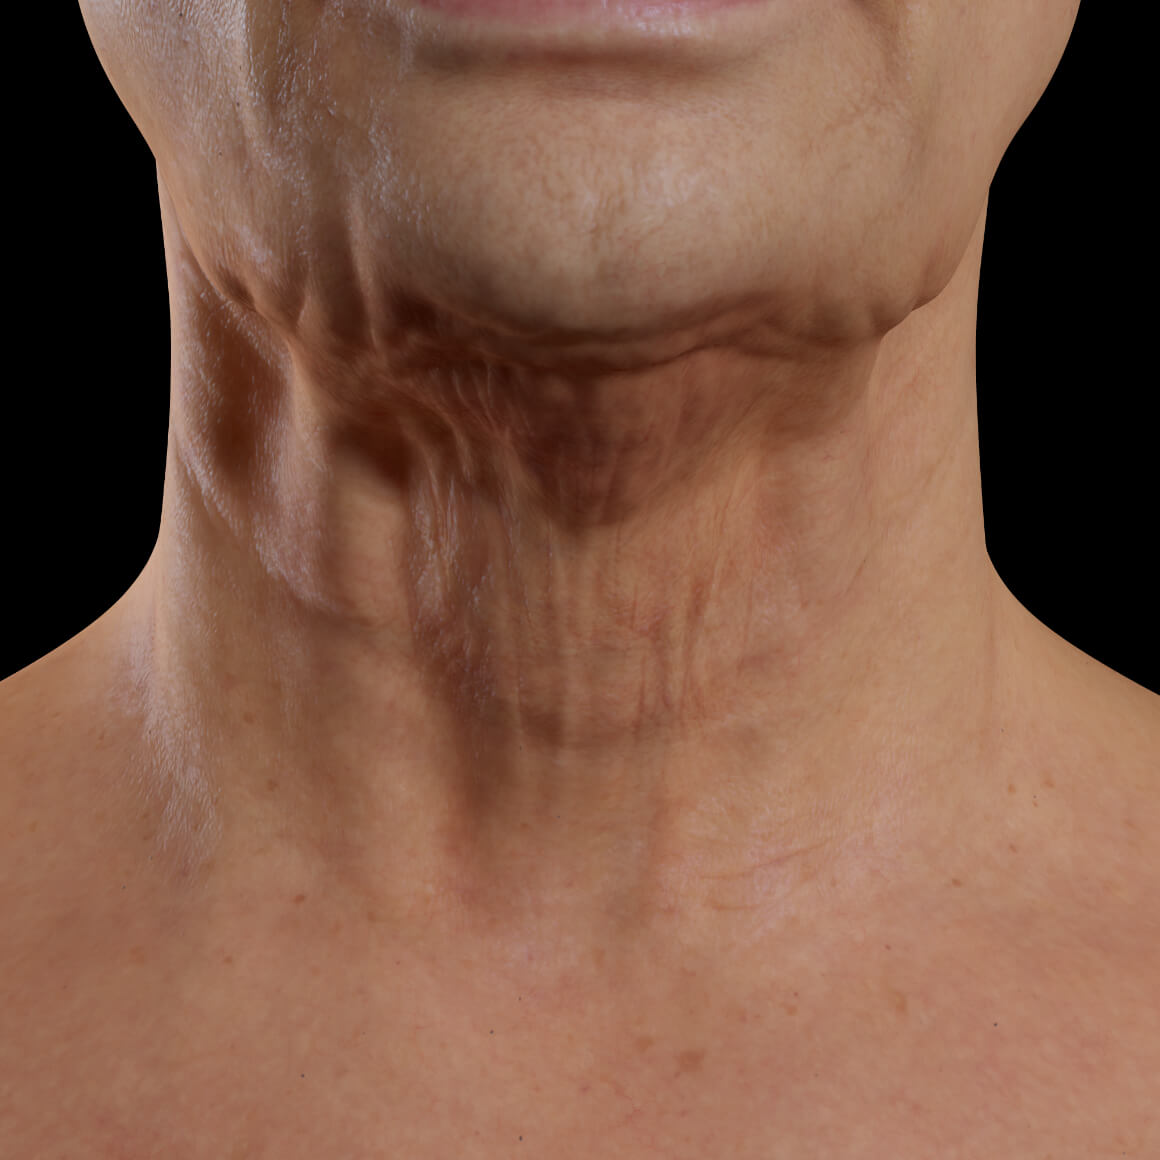 Clinique Chloé female patient facing front showing laxity in the neck area